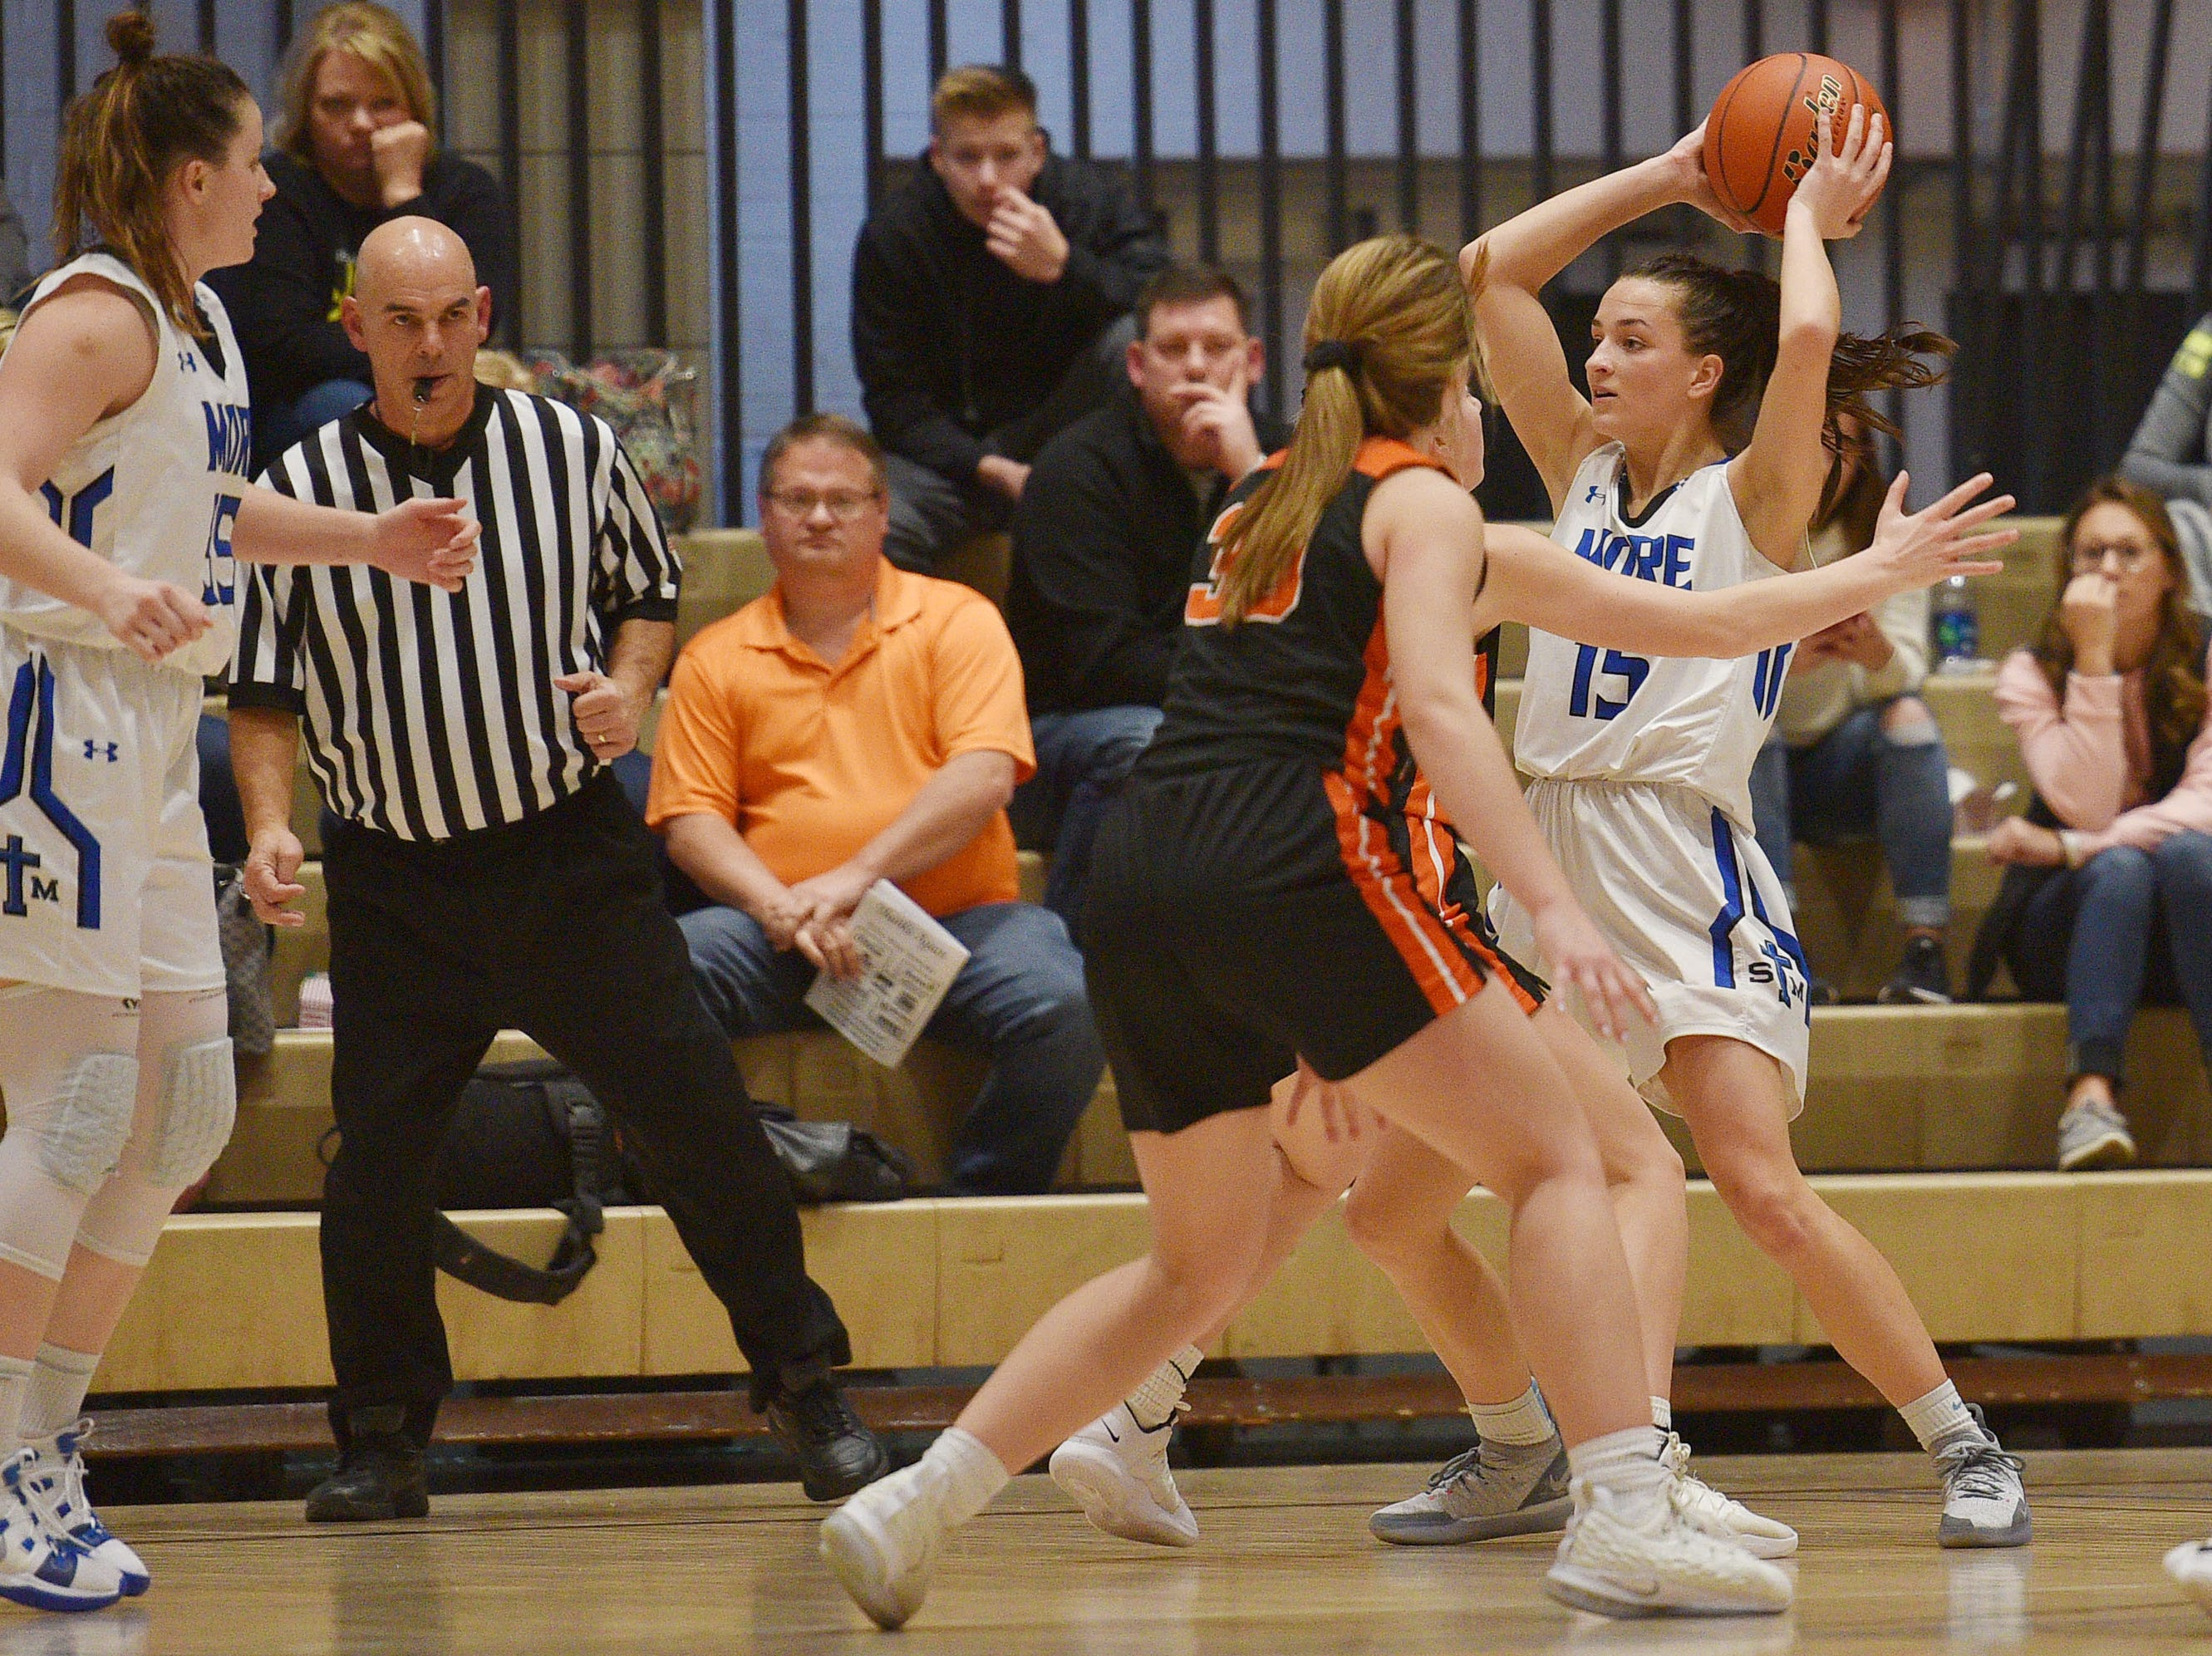 St. Thomas More's Ciara Benson goes against Lennox defense in the Hanson Girls Classic Saturday,  Jan. 12, in Mitchell.